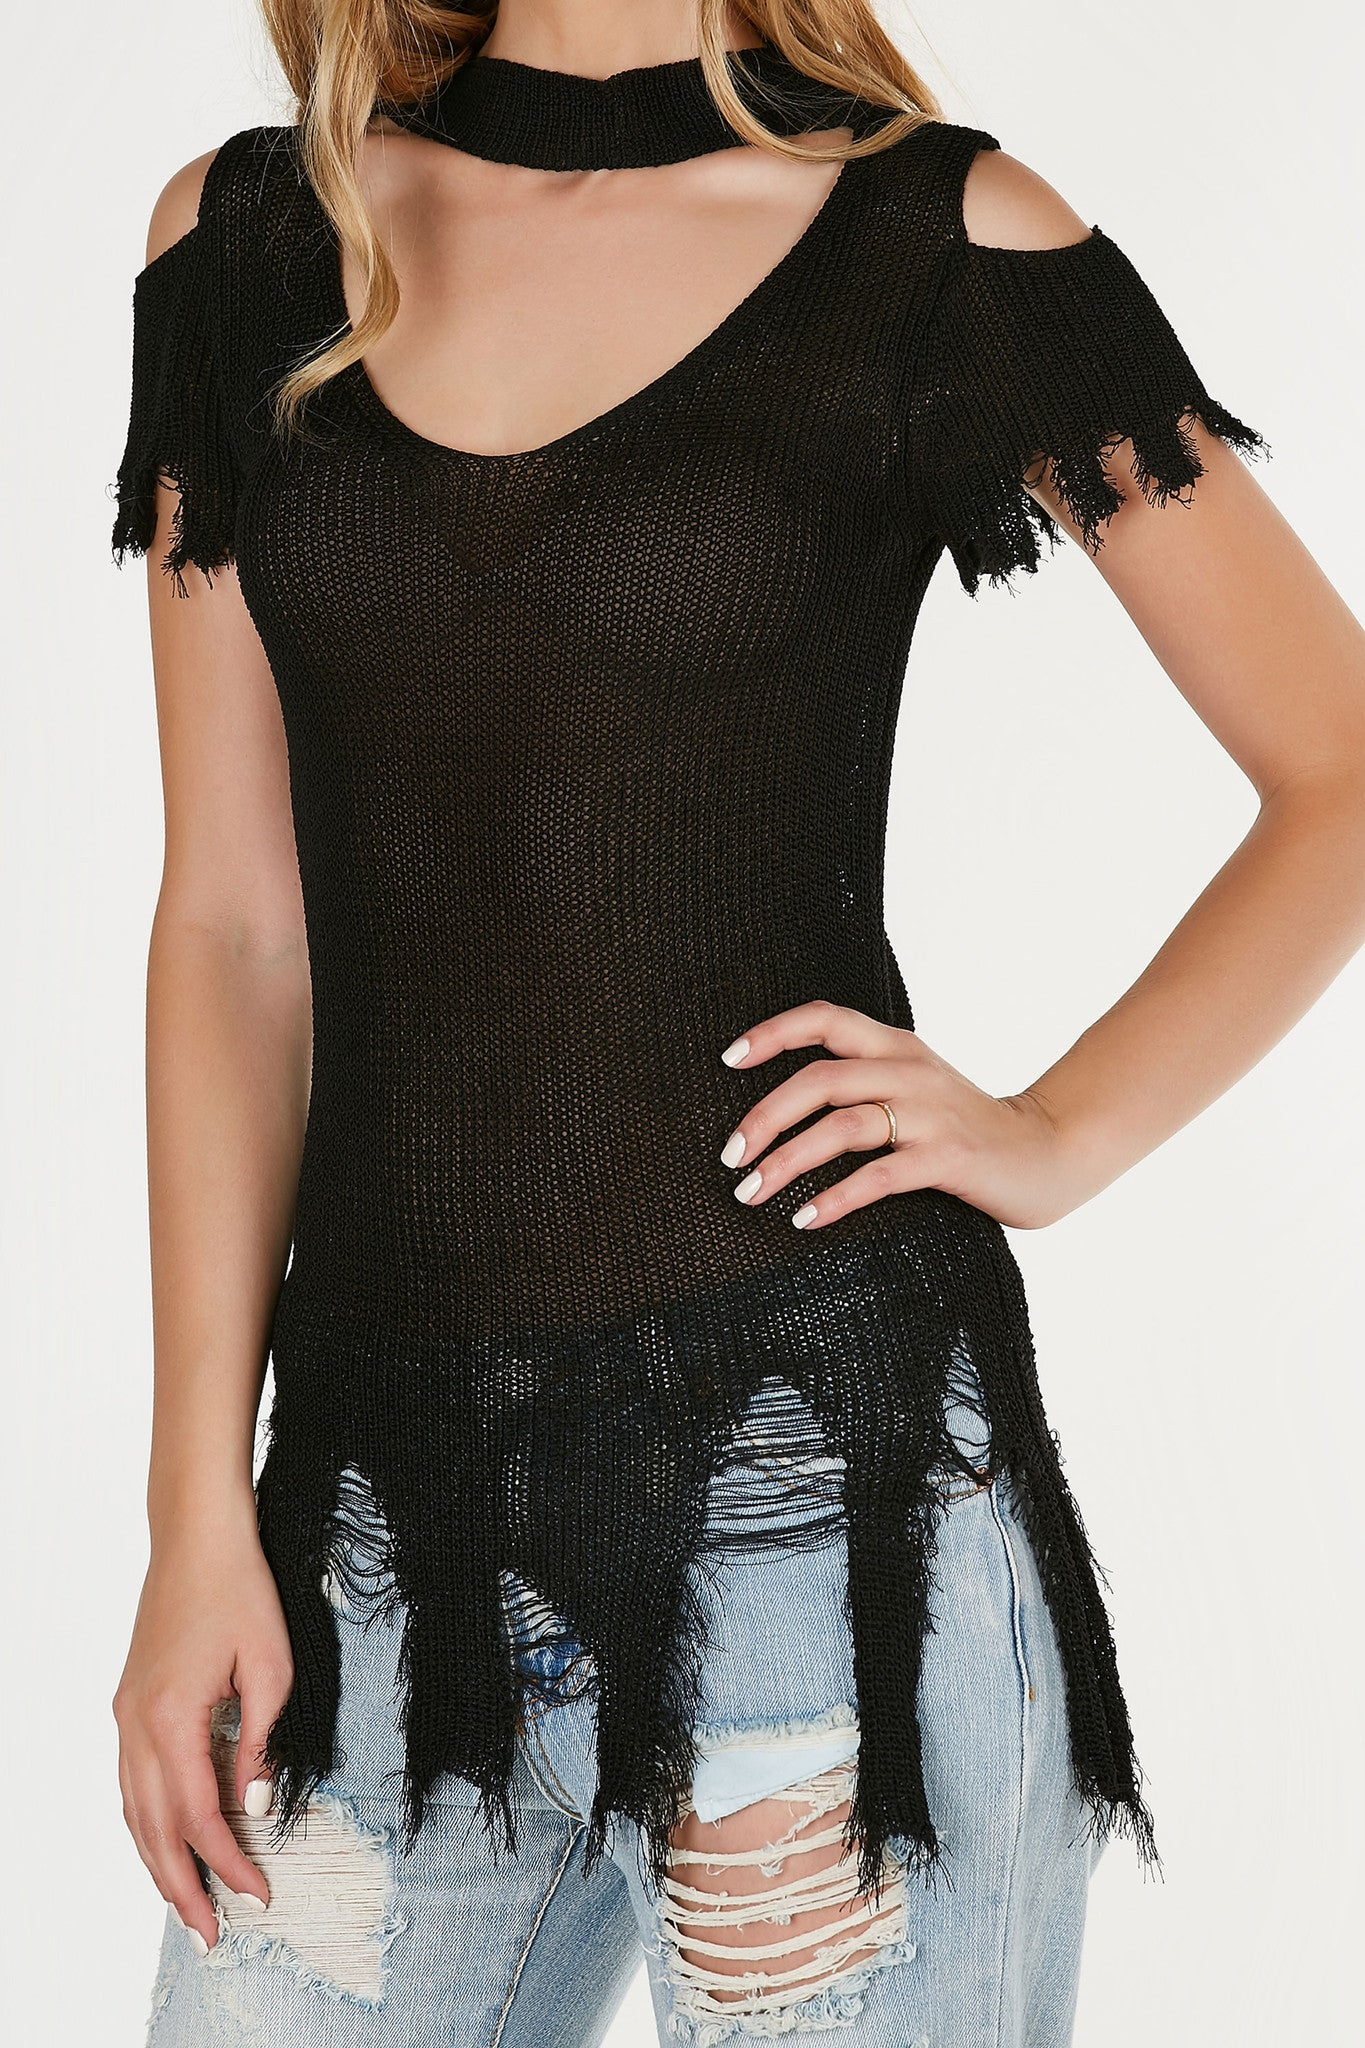 Knitty Gritty Distressed Top